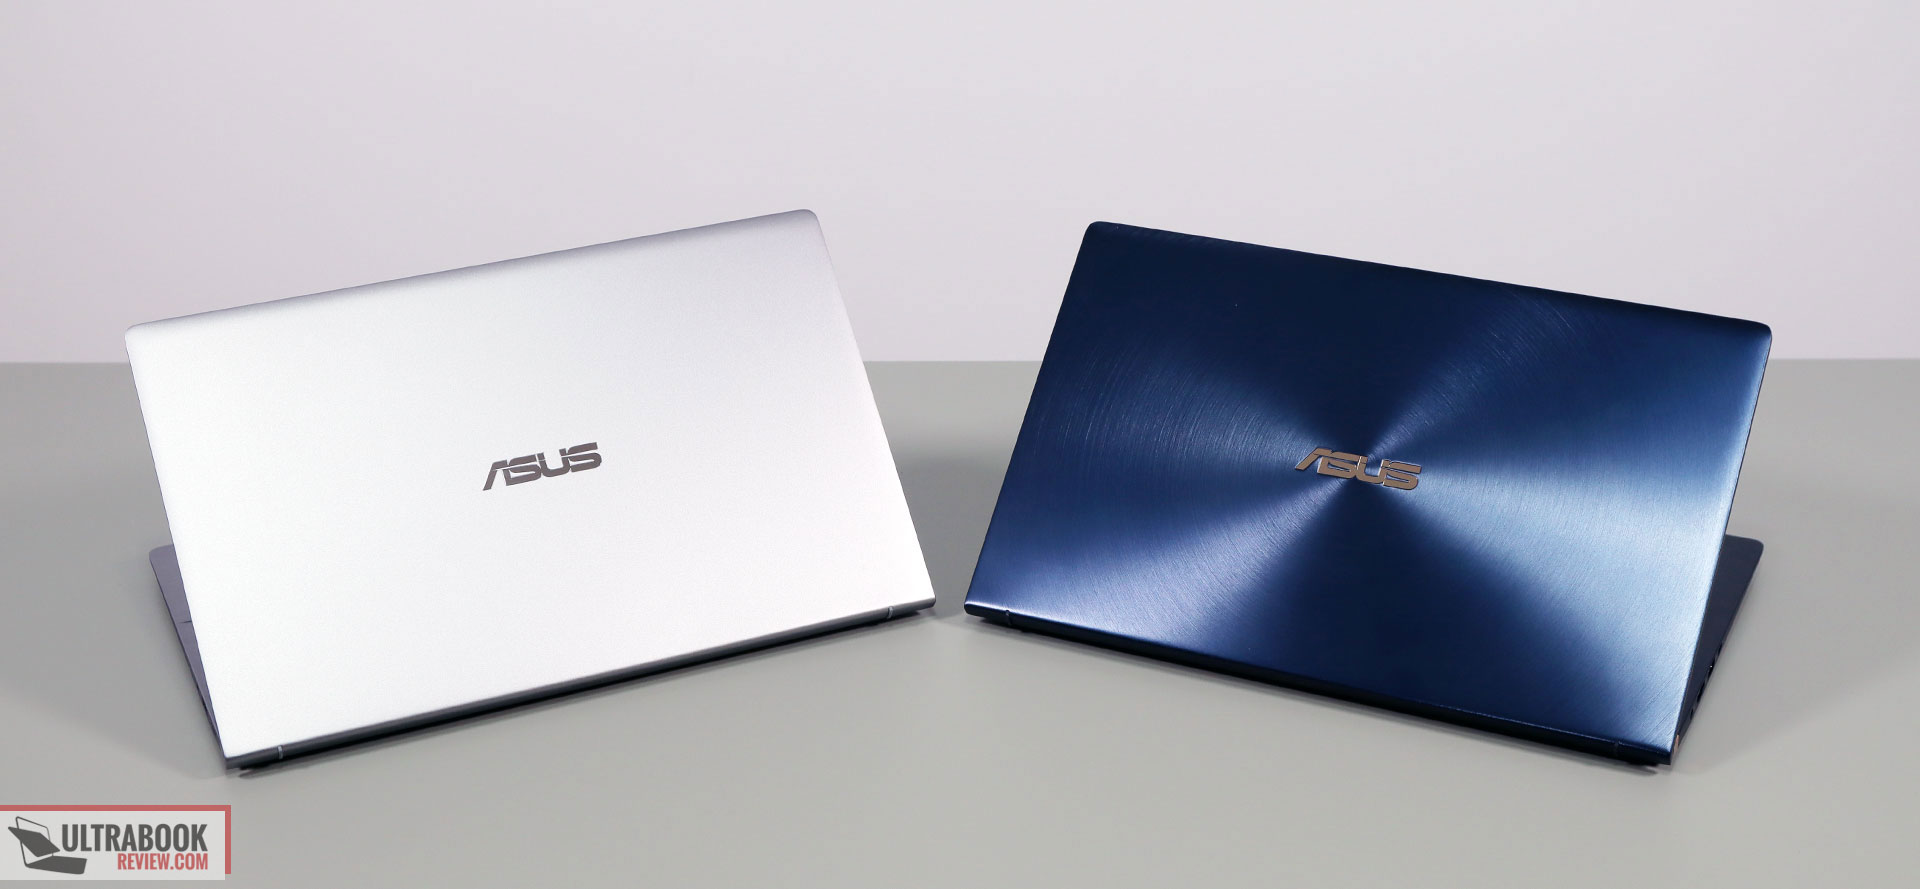 ASUS Zenbook UX301LA-DH51T Haswell Ultrabook Now Available in US